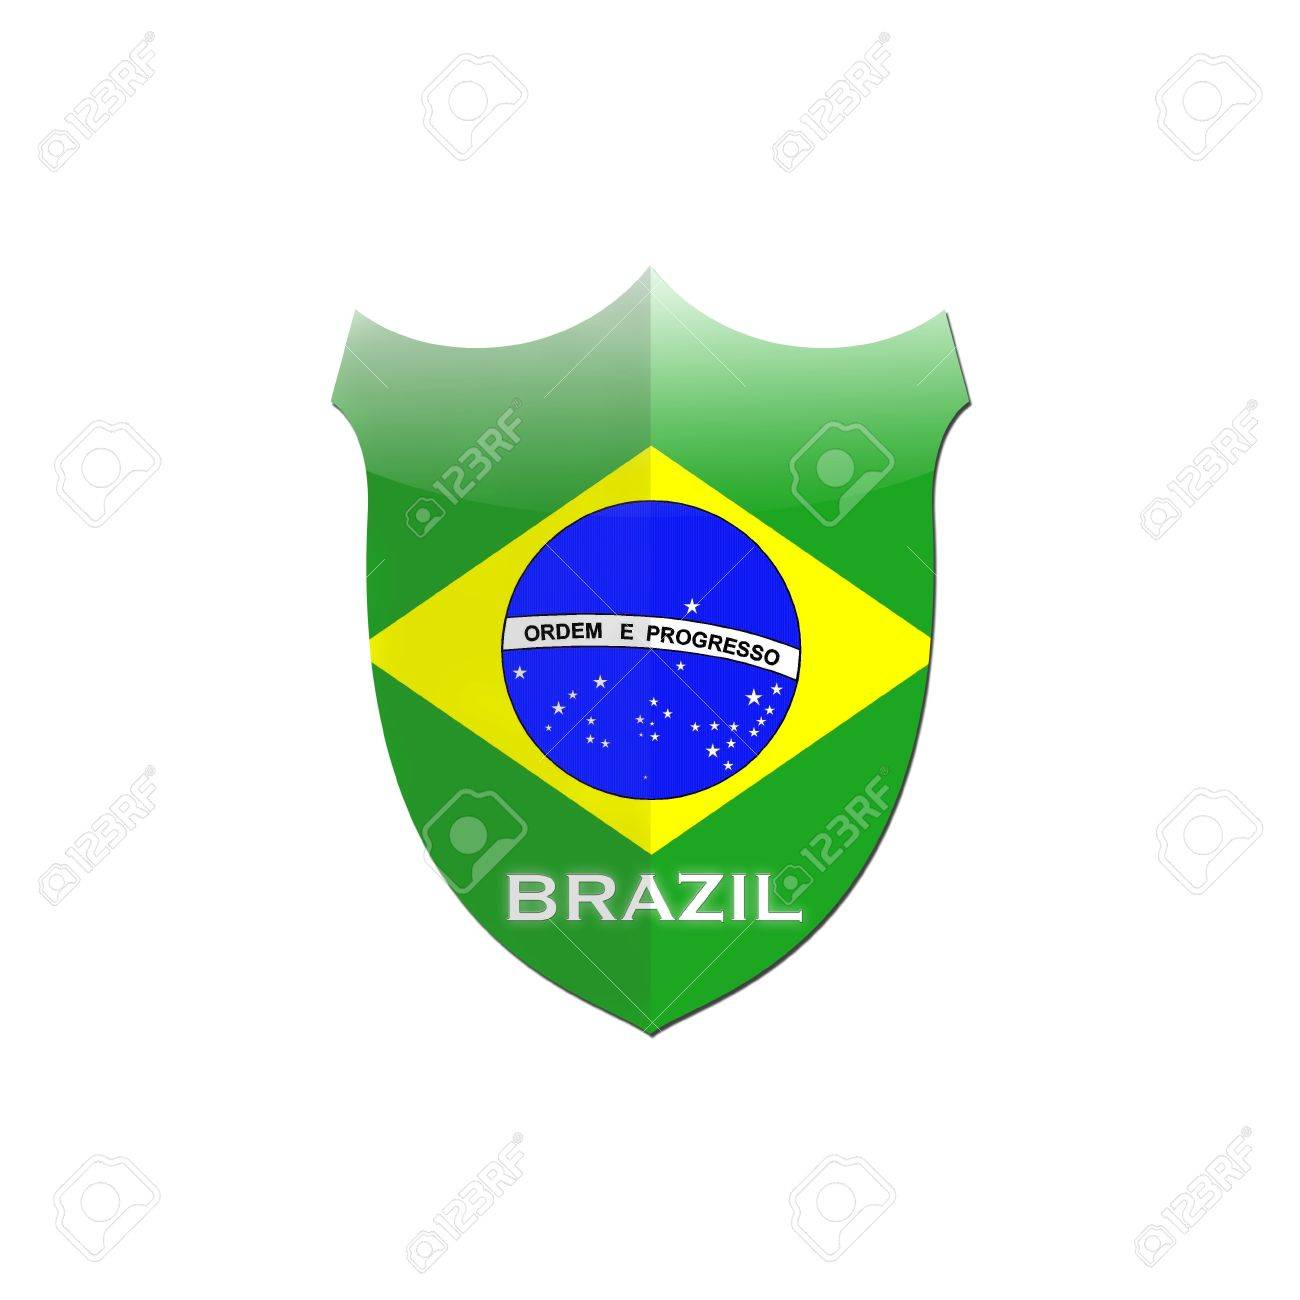 Illustration with Brazil shield on white background Stock Illustration - 16749670